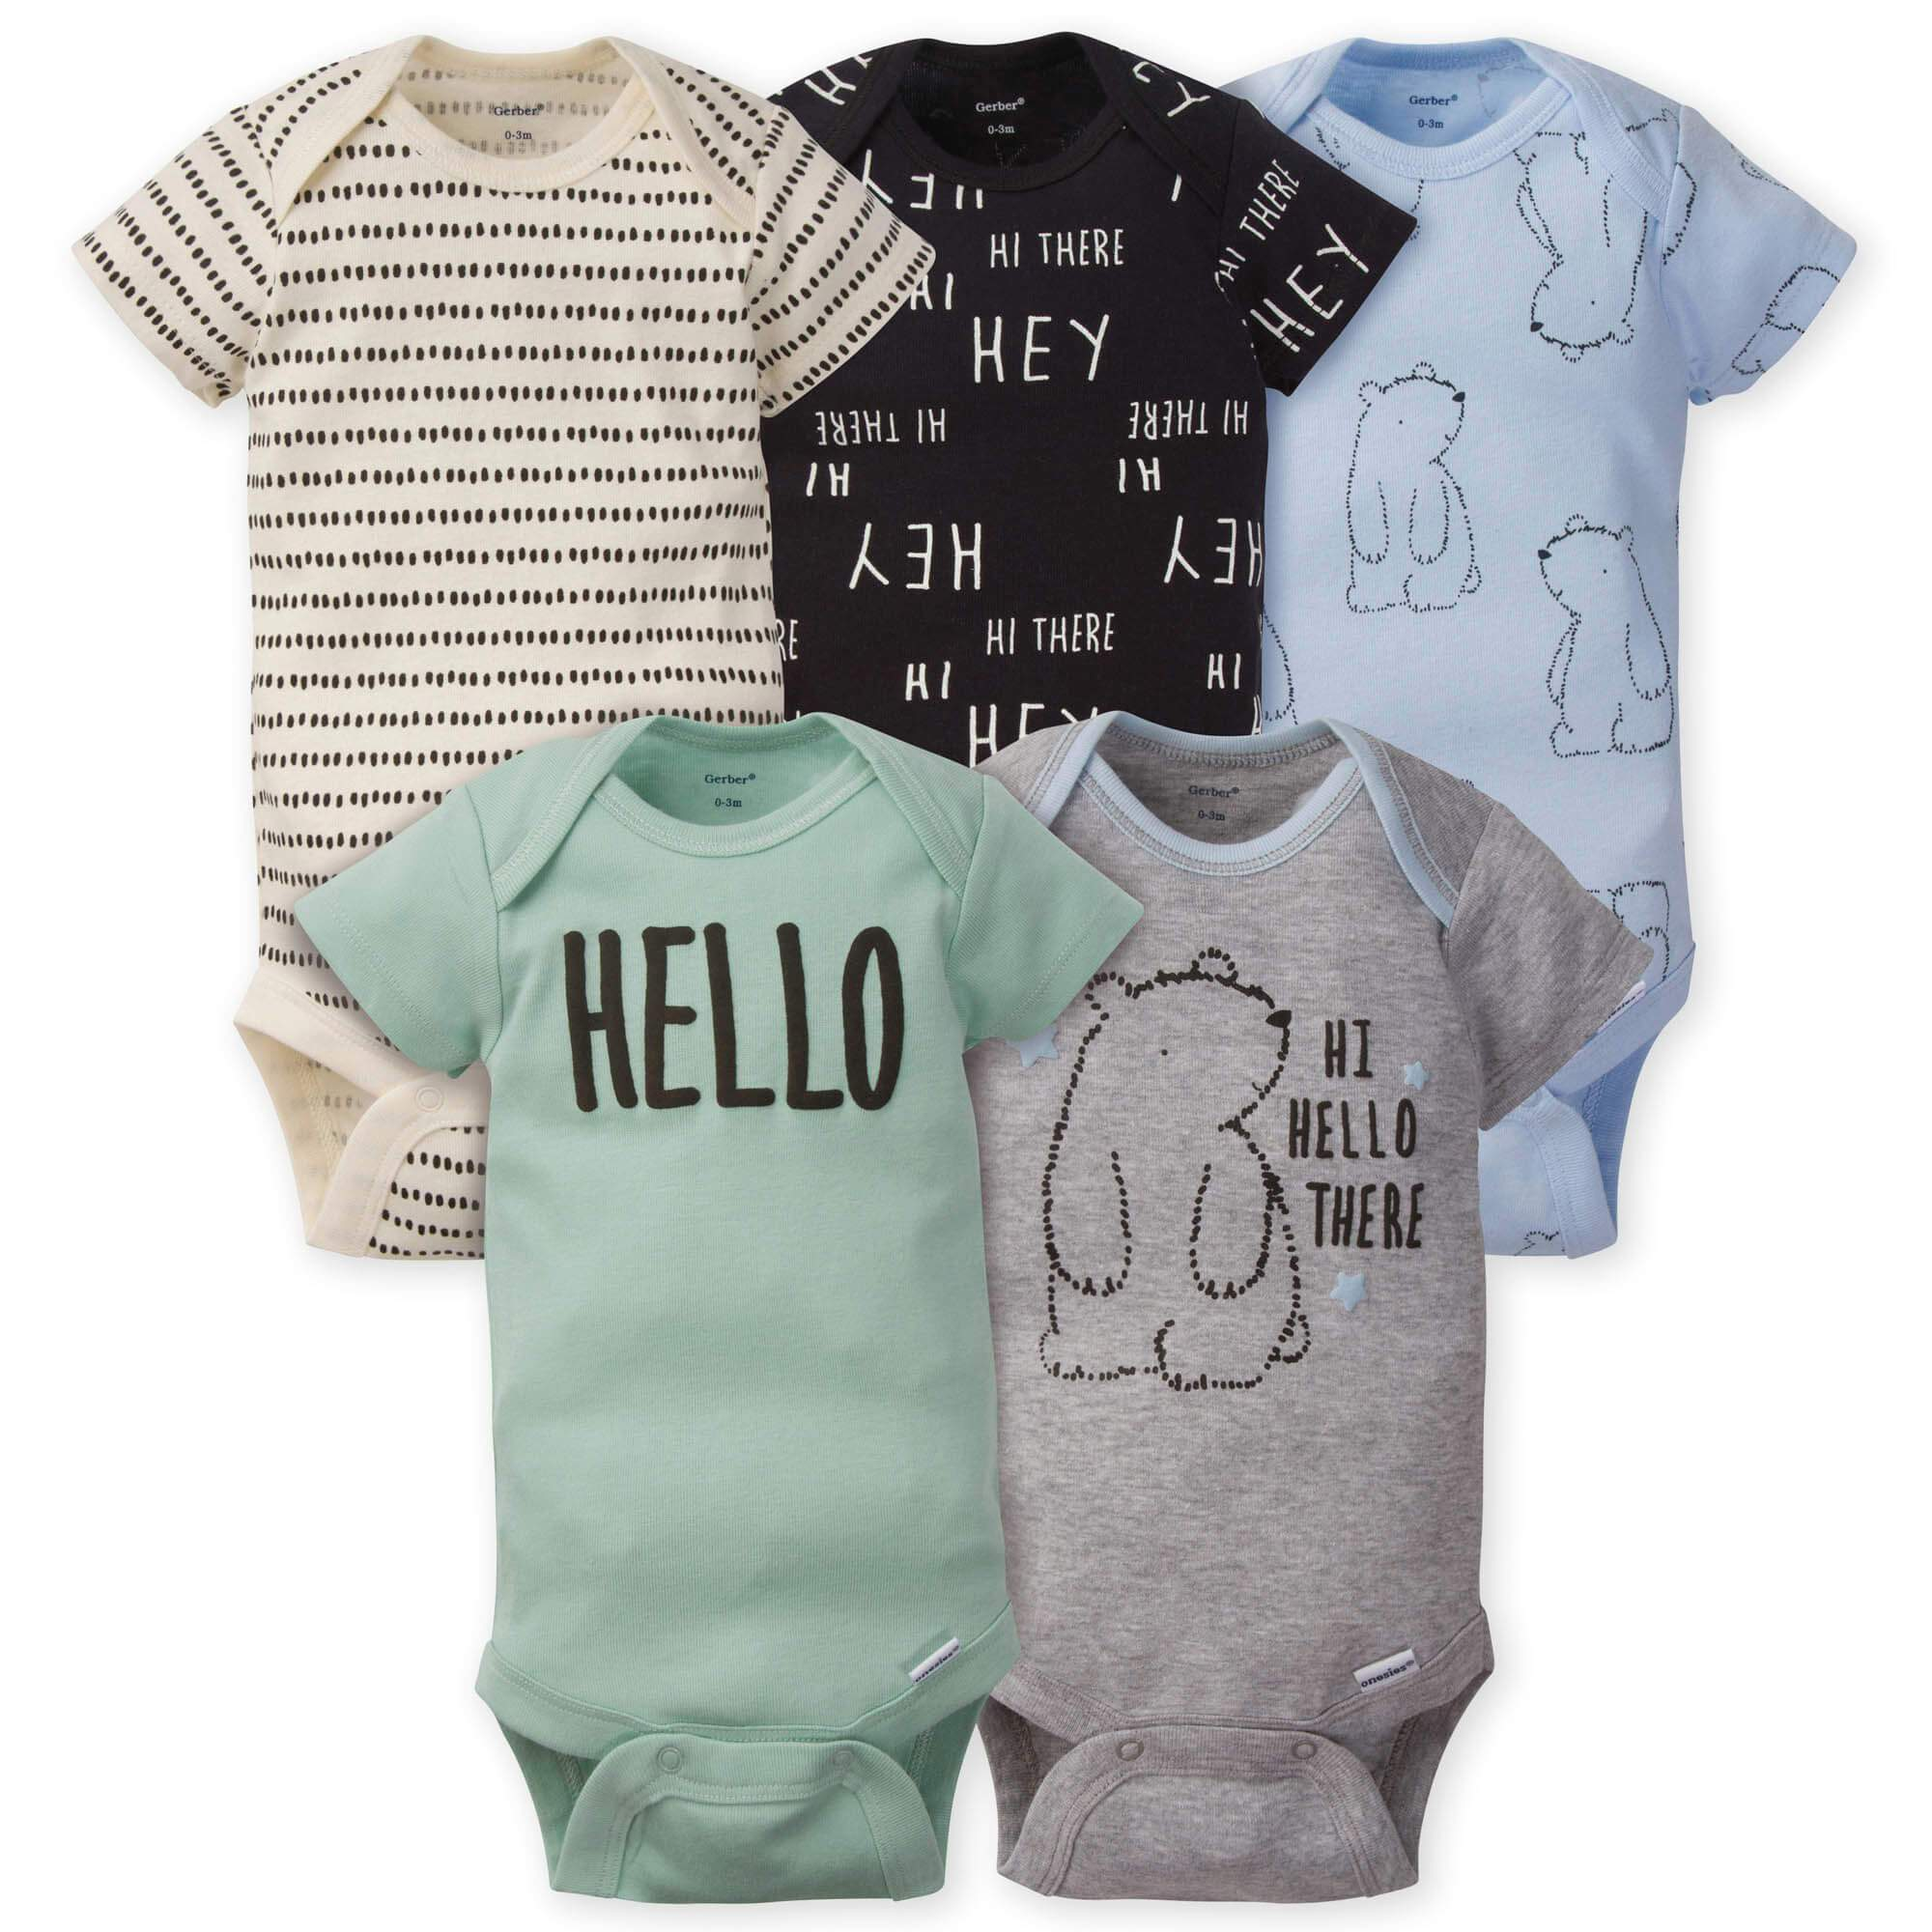 5-Pack Boys Bear Onesies Brand Short Sleeve Bodysuits